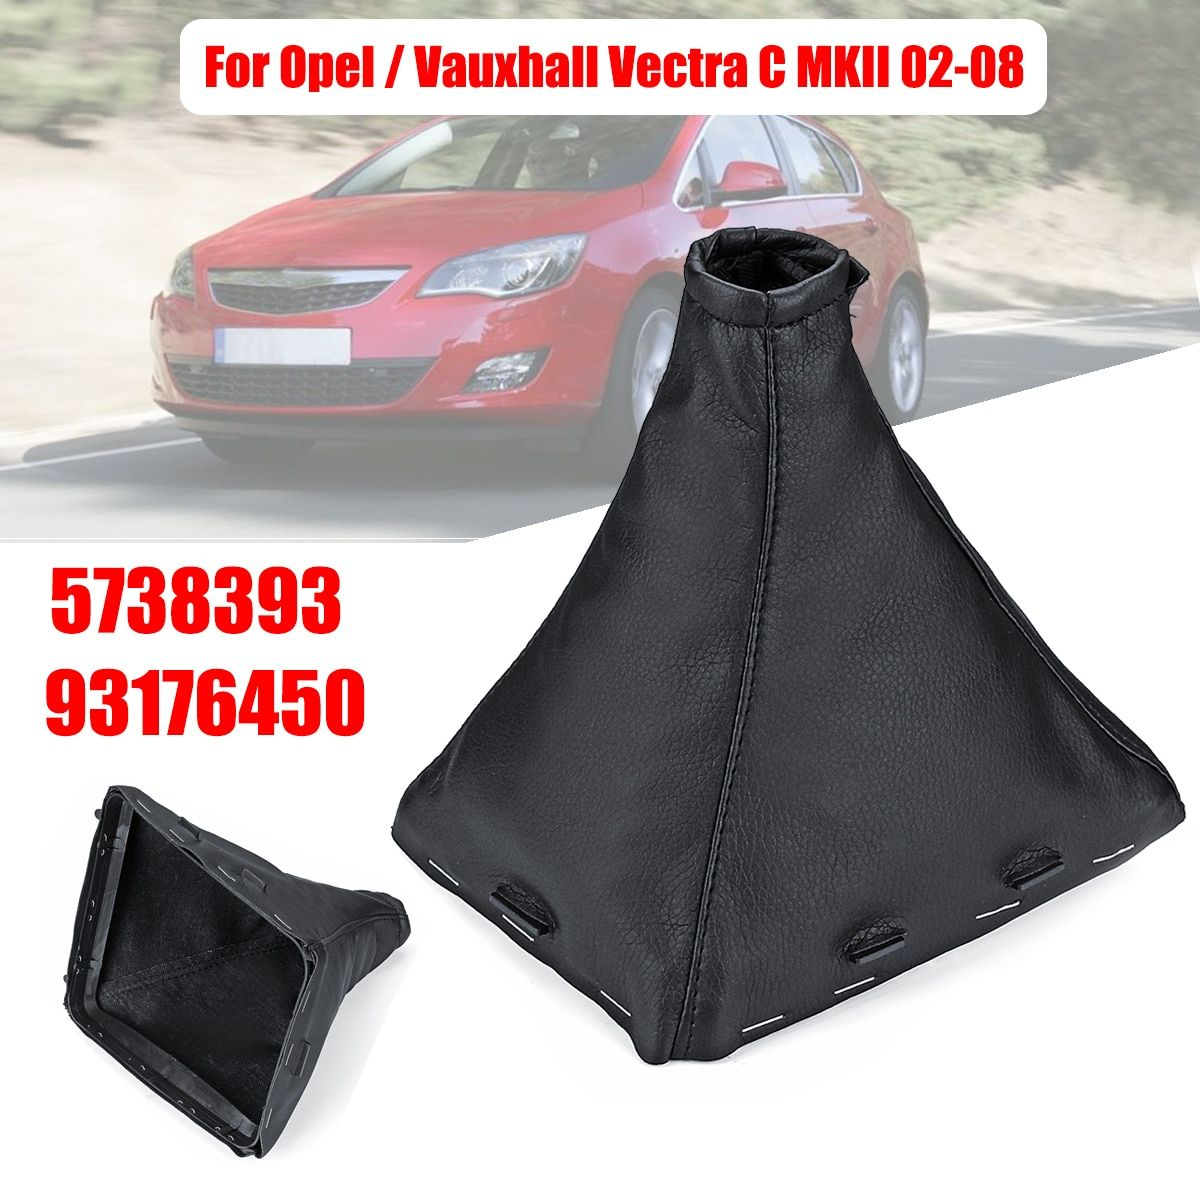 93176450 Car Gear Shift Knob Gaiter Boot Cover Gear Stick Cover For Opel/Vauxhall Vectra C MKII 2002-2008 5738393